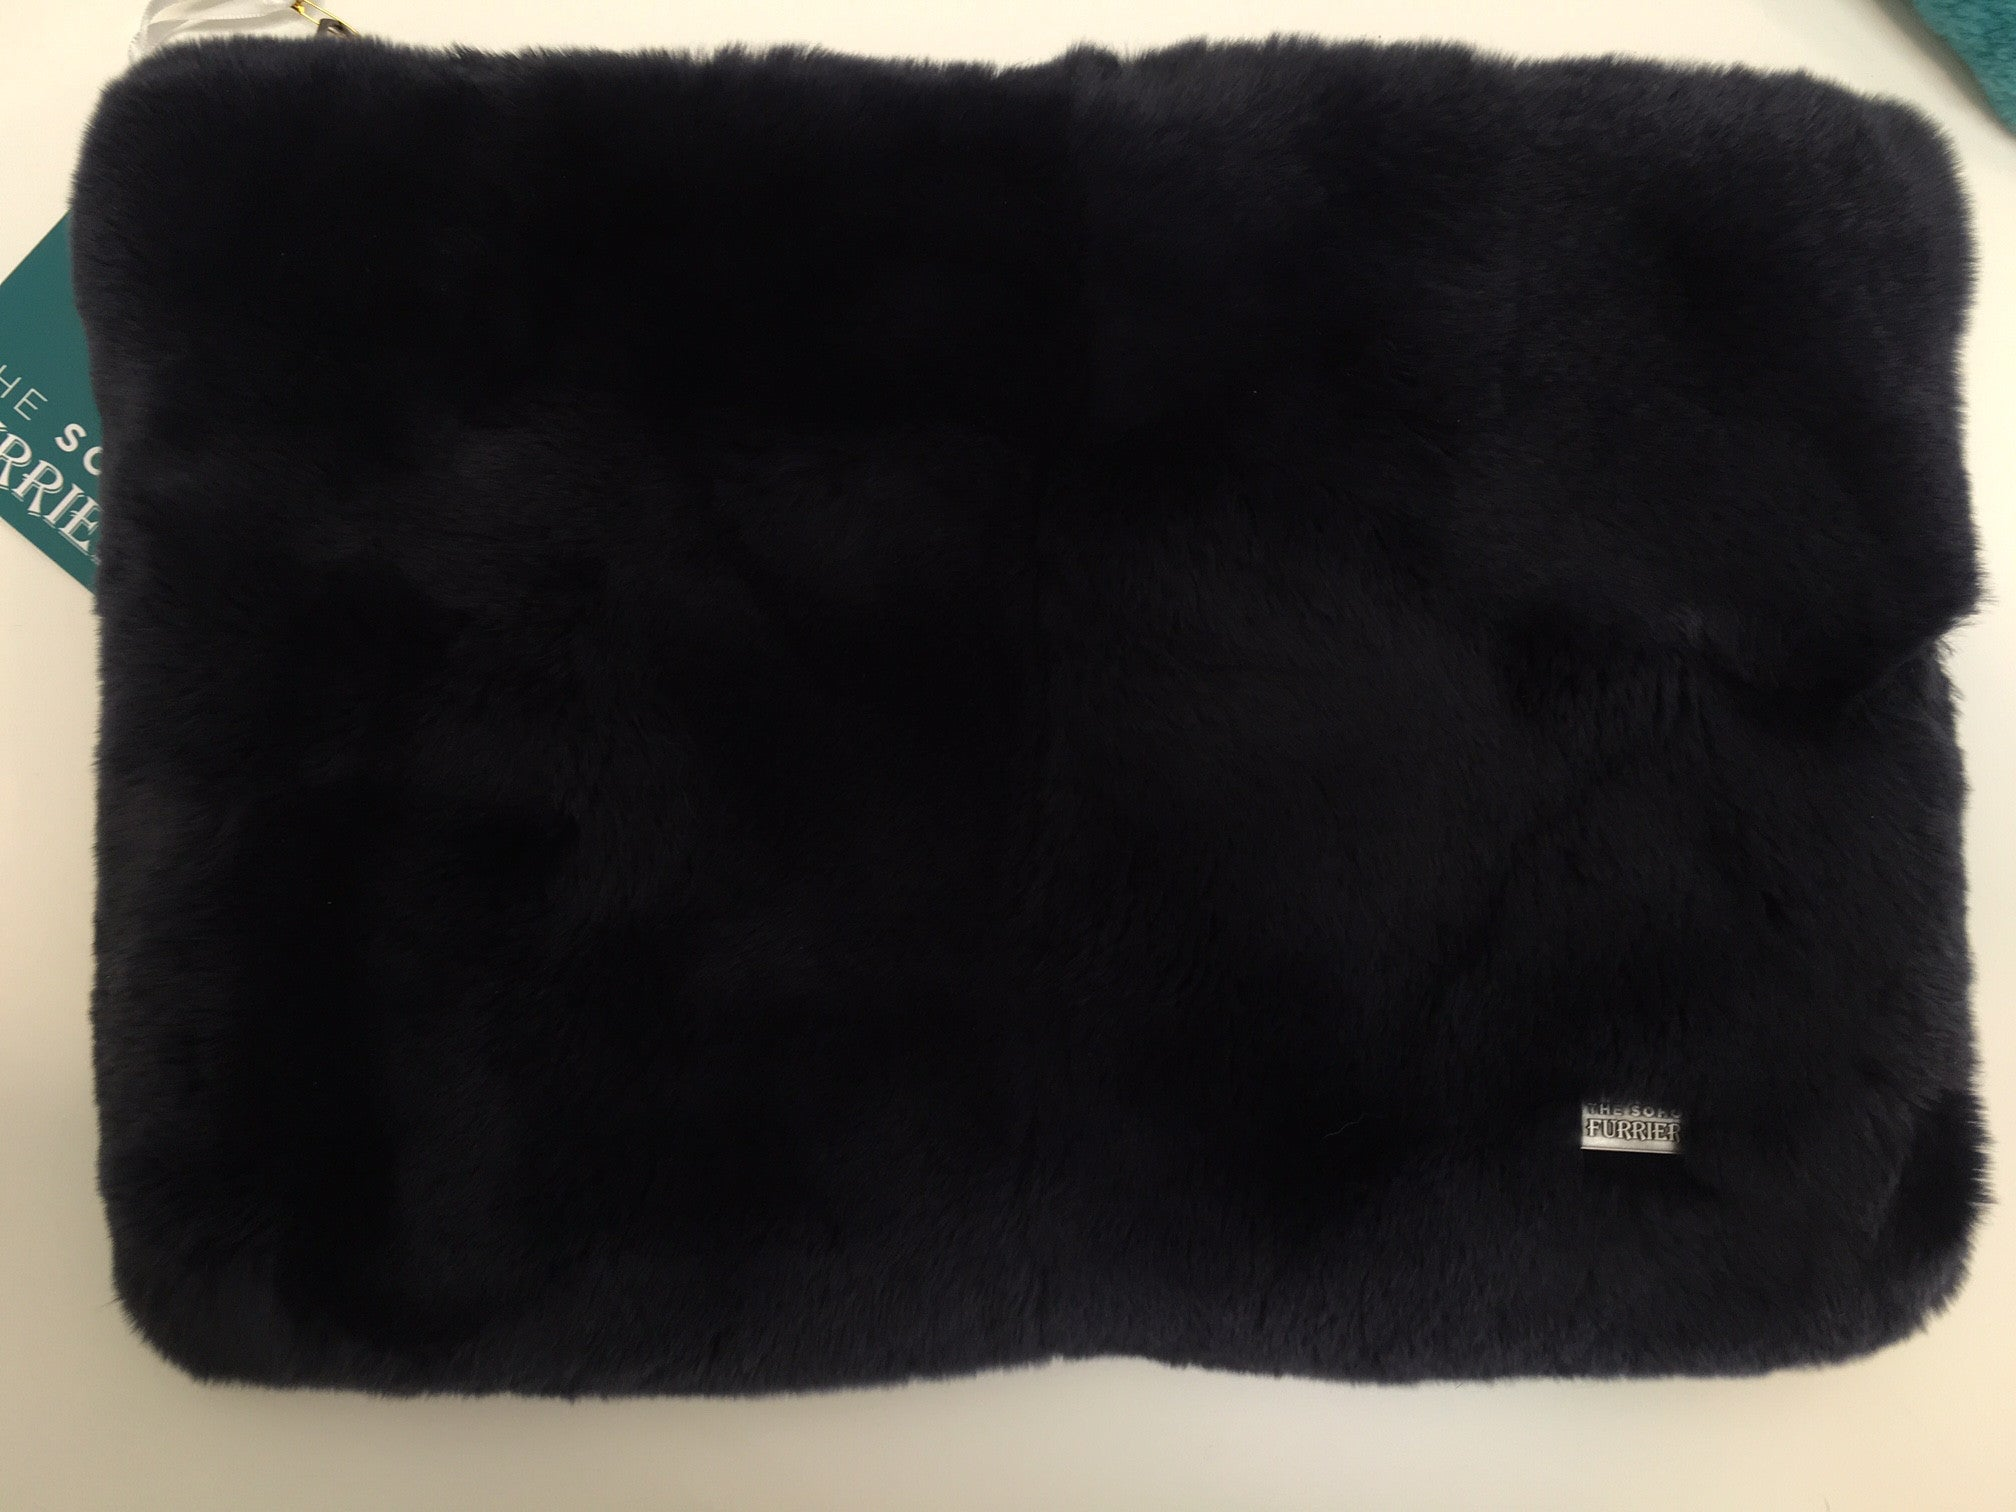 x Oversized Rex Clutch Bag / Laptop Case in Ink - The Soho Furrier